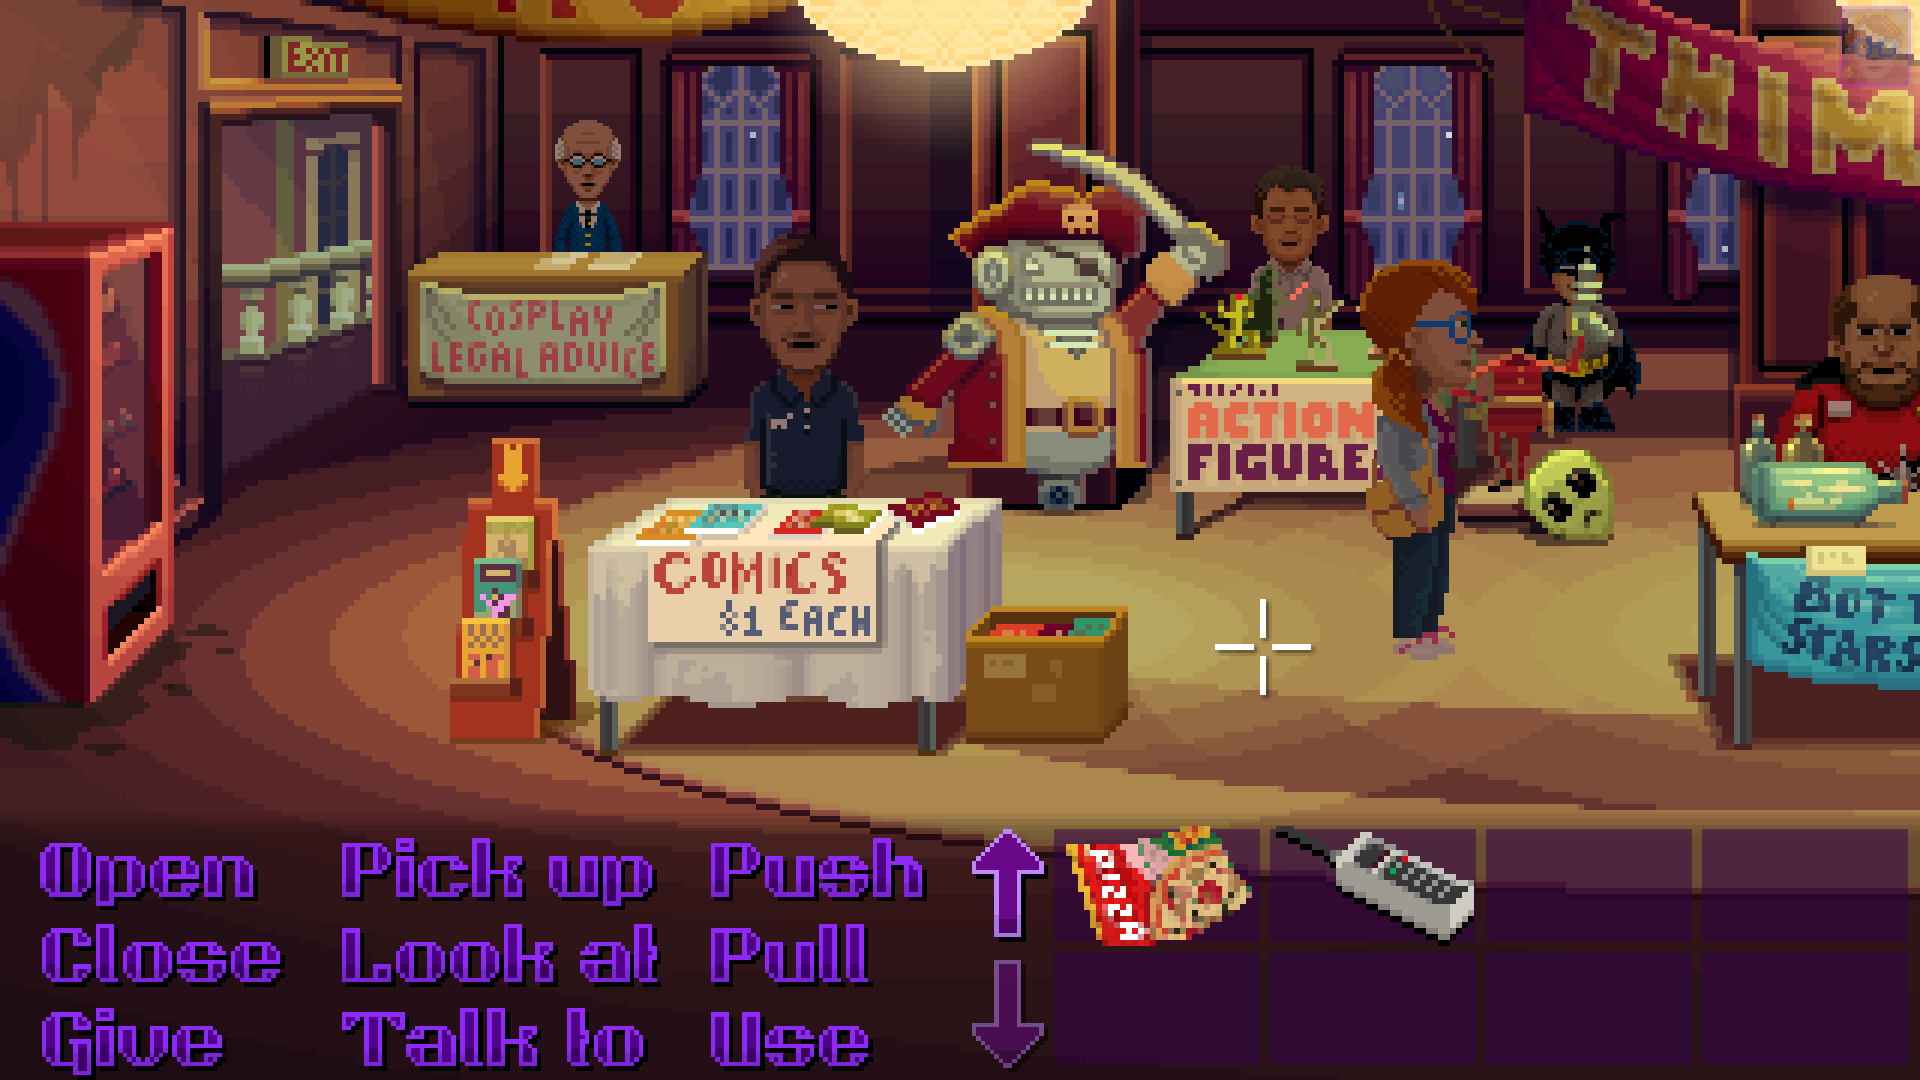 IMAGE(http://vgsmproject.com/wp-content/uploads/2017/04/ThimbleweedPark020.png)